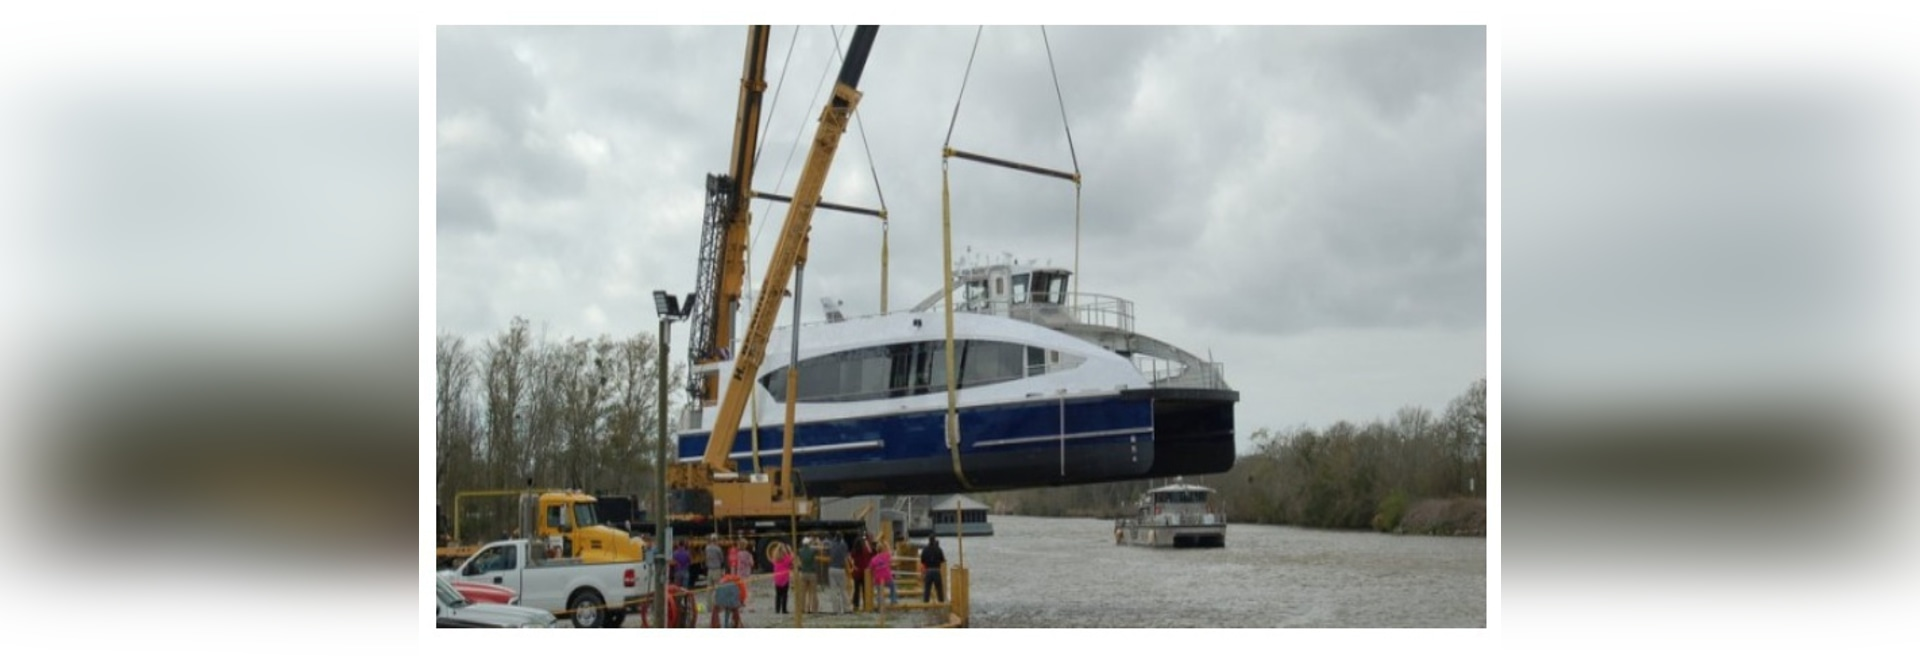 First new aluminum ferry for Citywide Ferry from Metal Shark travels to the water by air, assisted by two cranes.